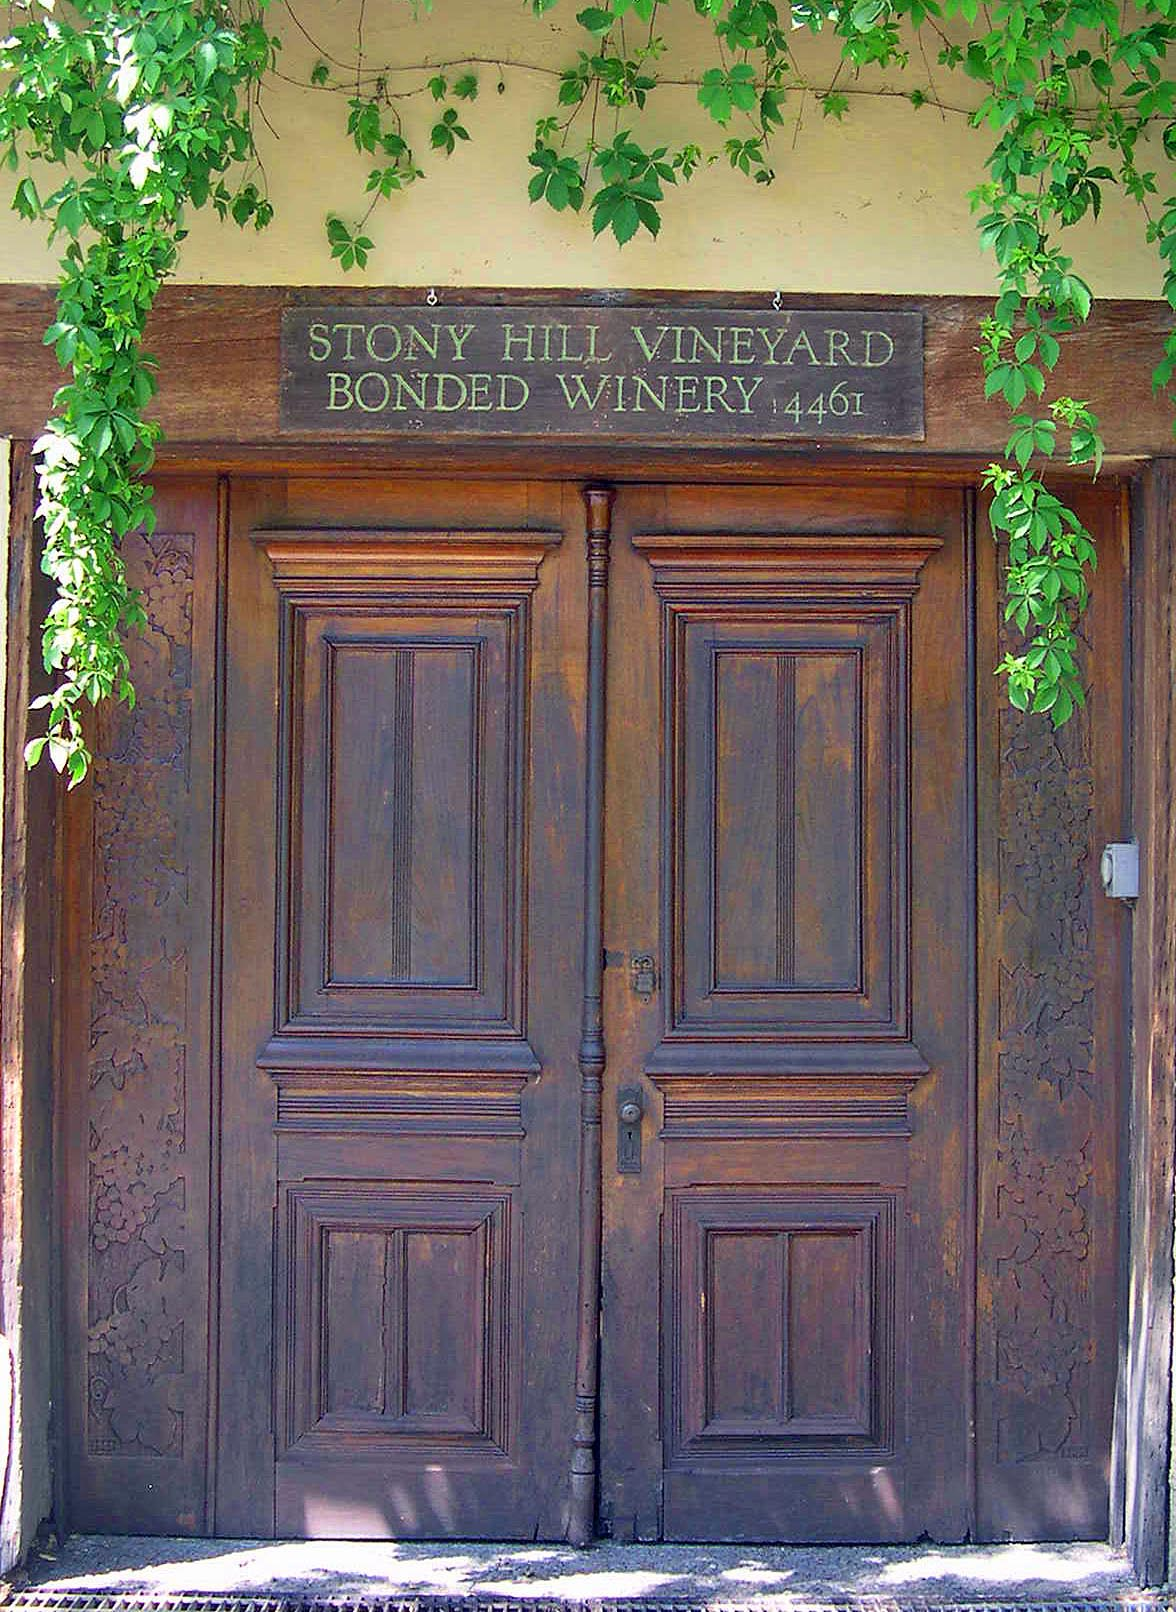 FileWinery Doors of Stony Hill Vineyard.jpg : winery doors - pezcame.com